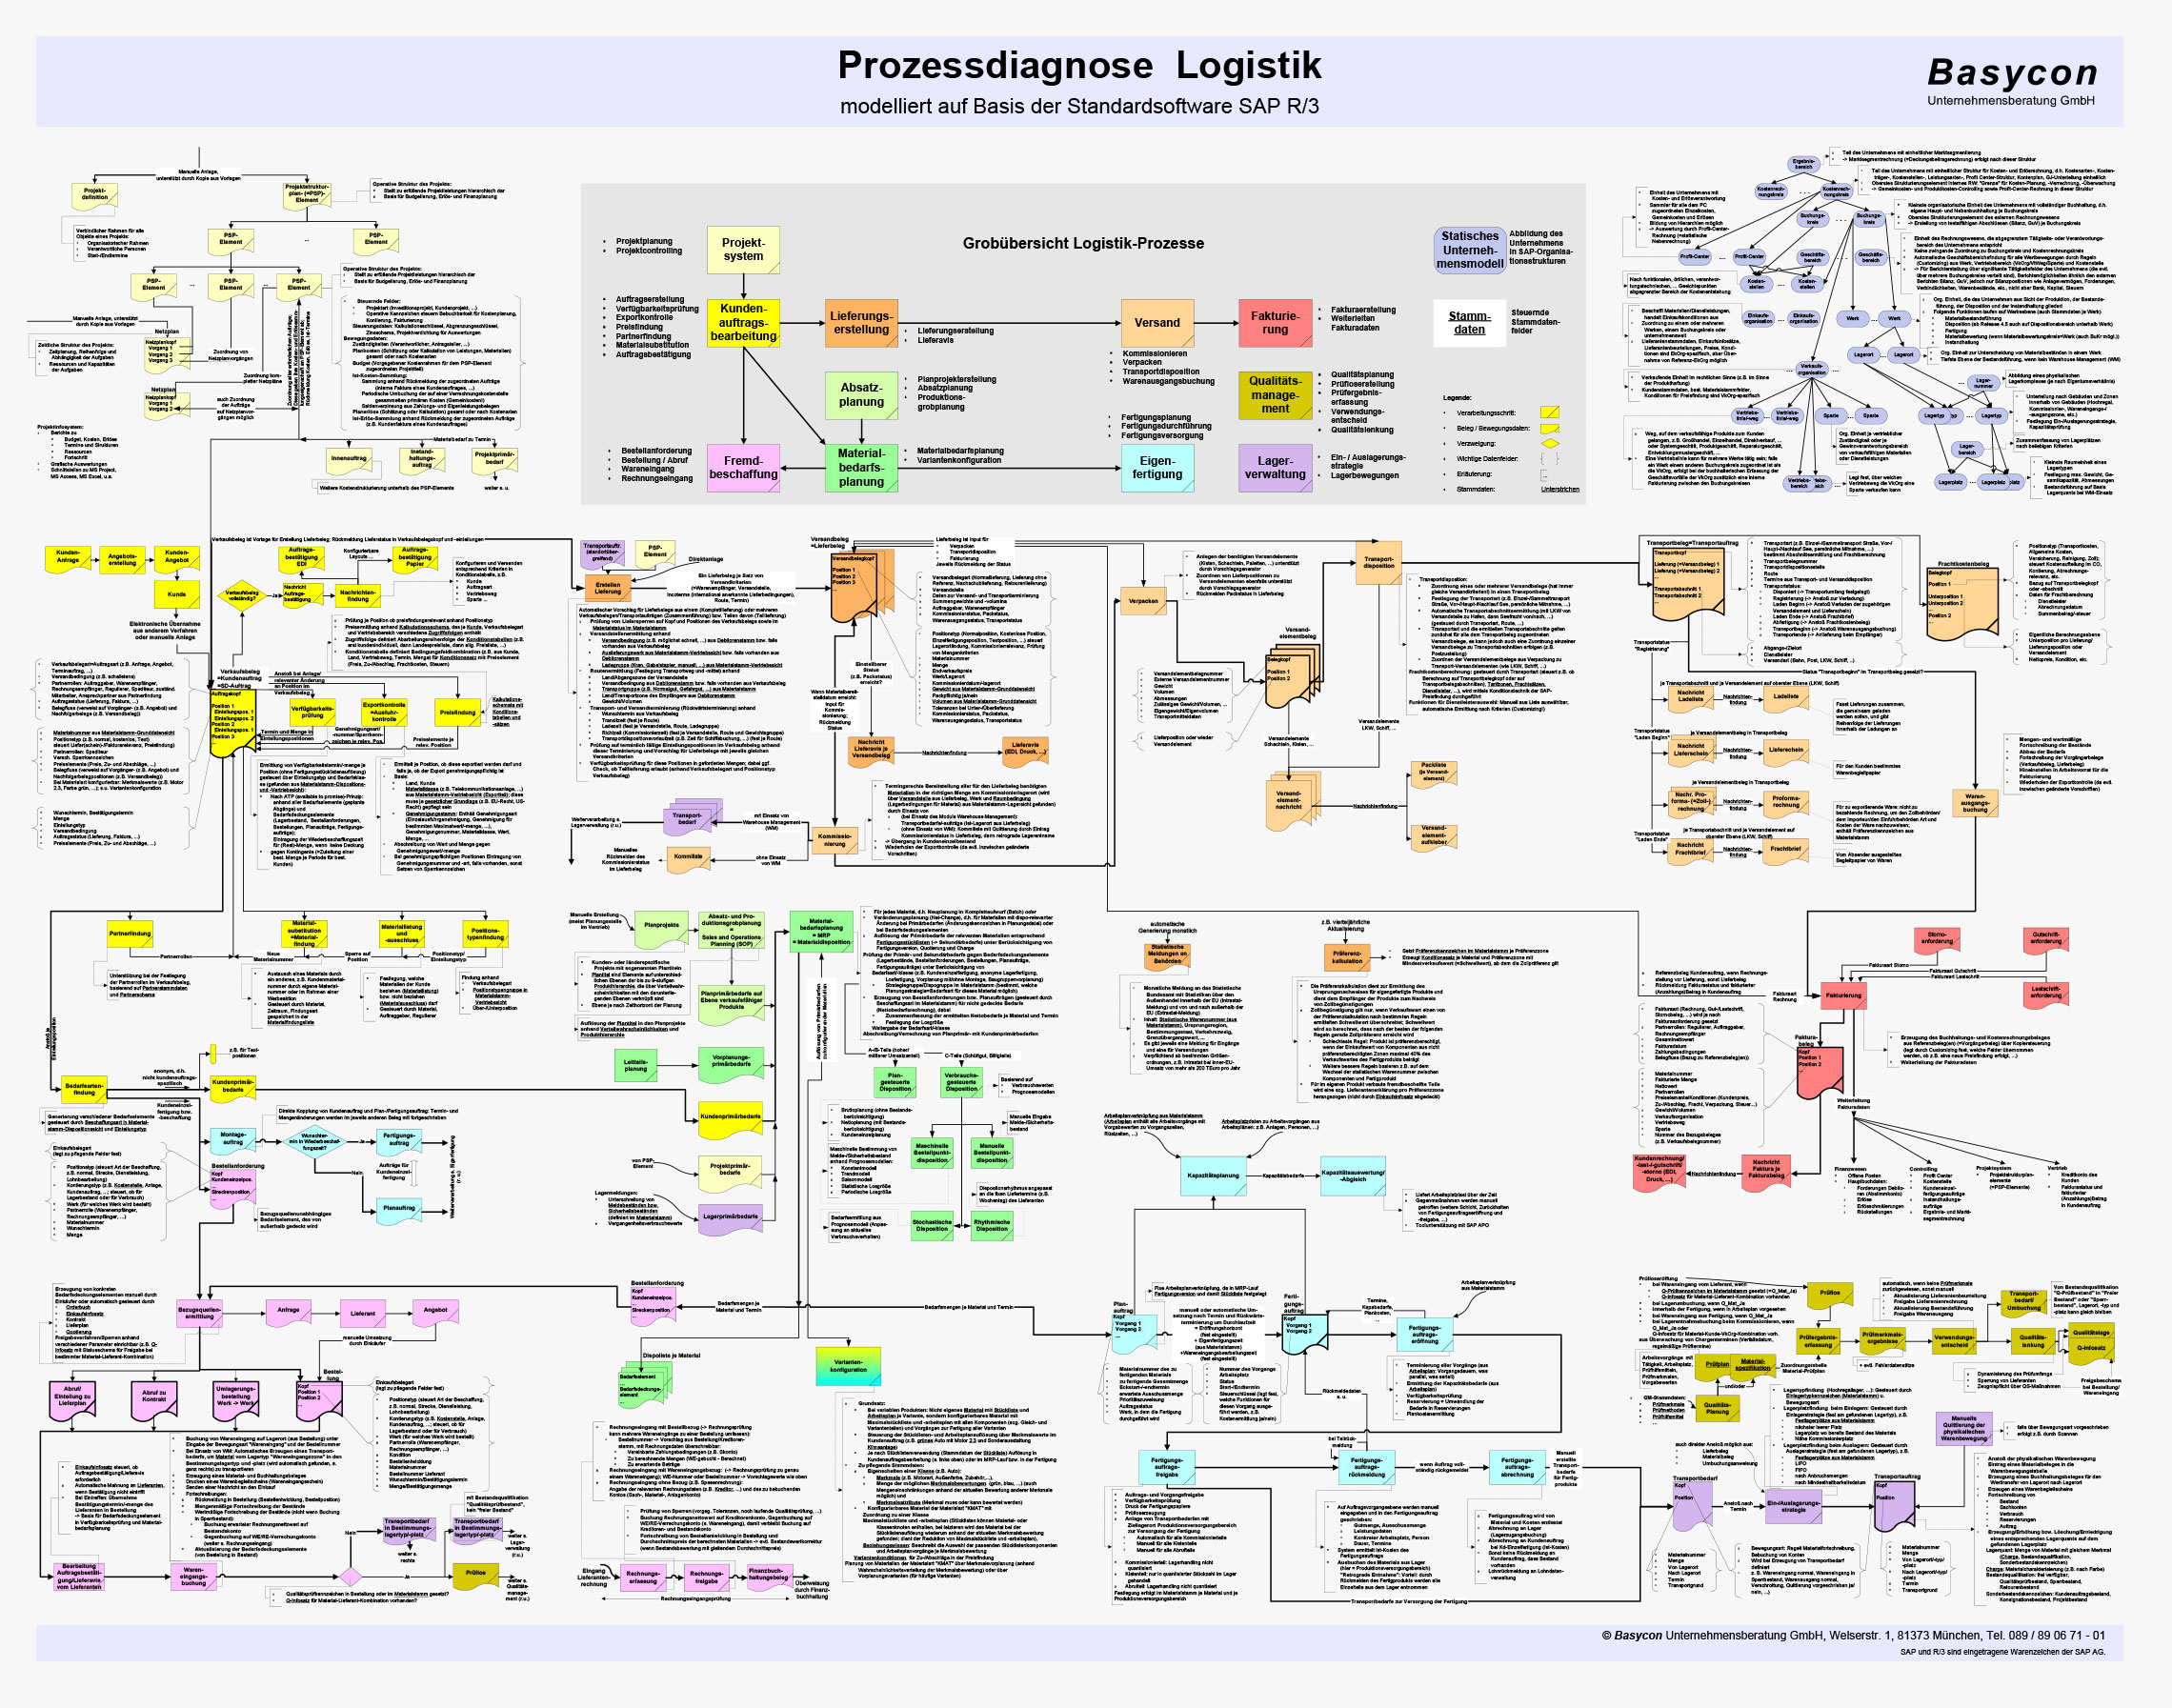 Poster SAP Prozessdiagnose Logistik